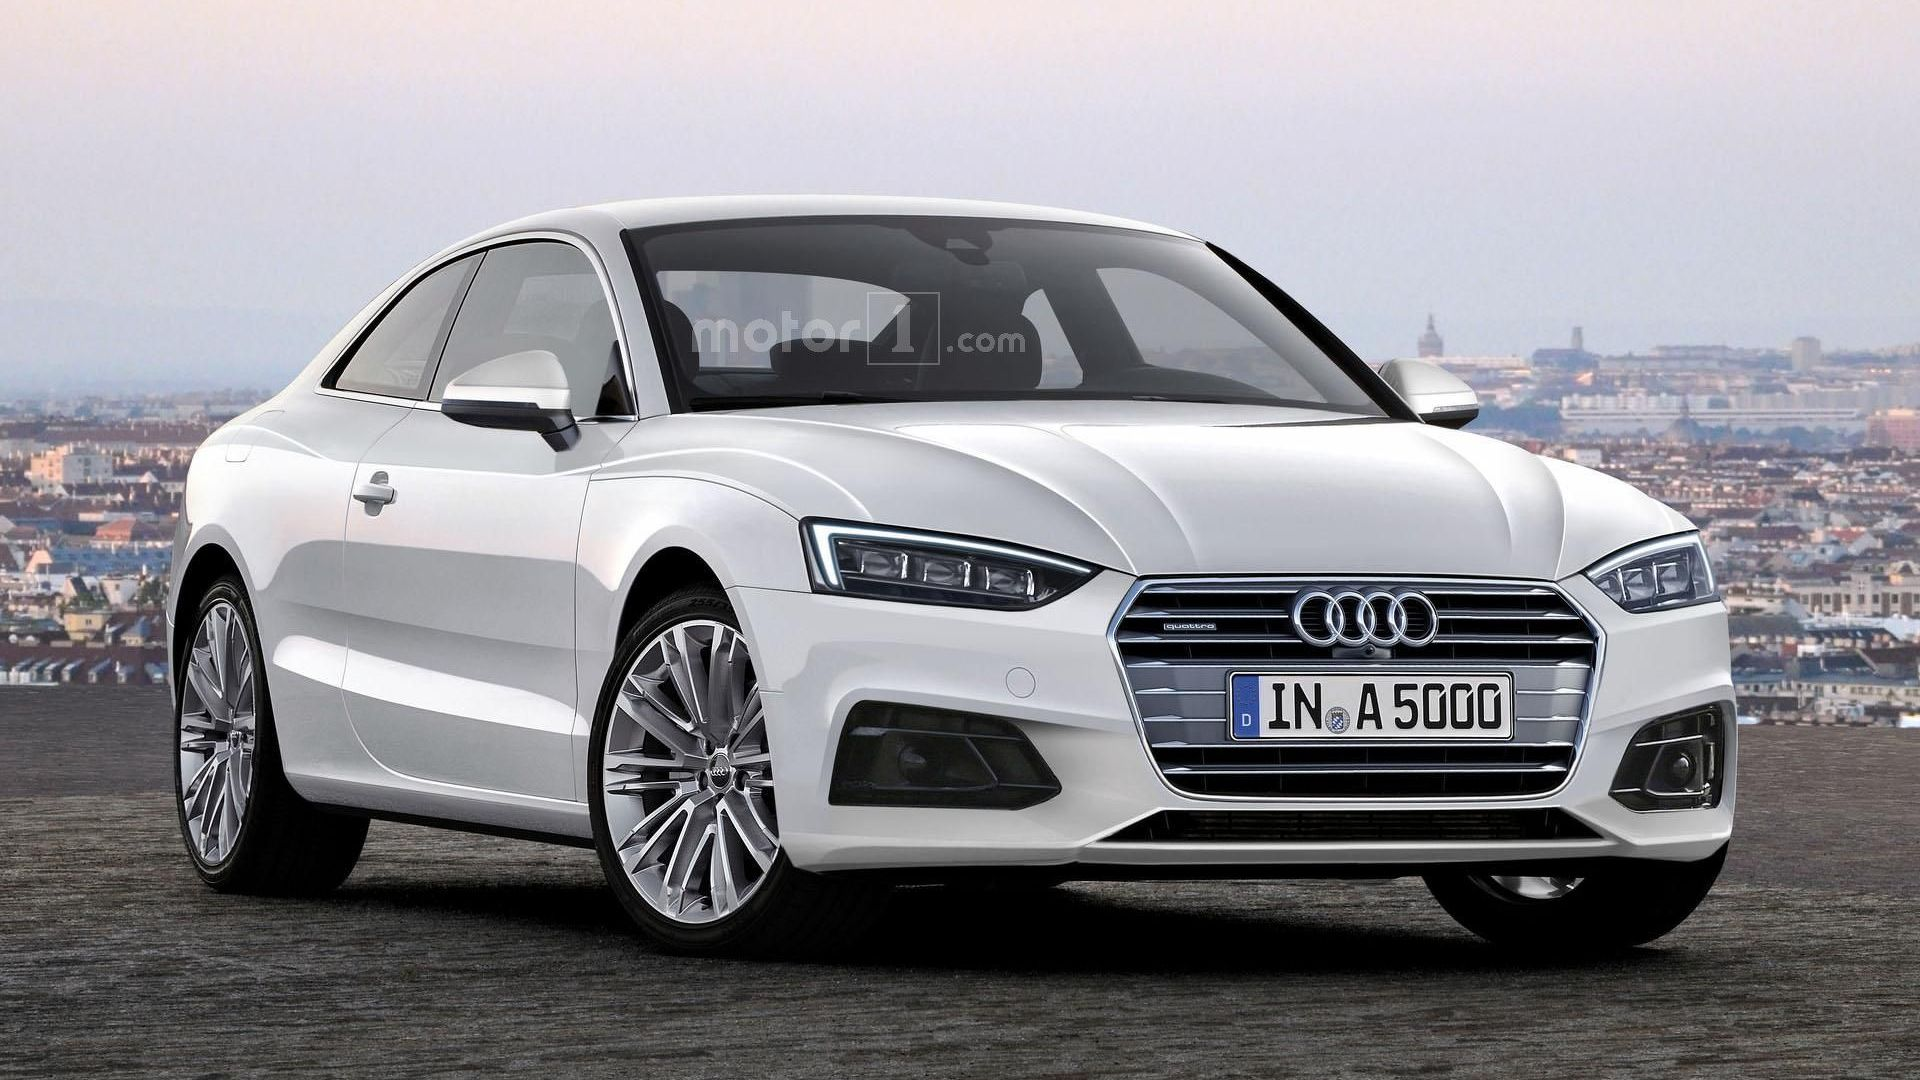 Audi A4 Coupe 2017 Audi A5 Coupe Looks Rather Stylish In New Rendering